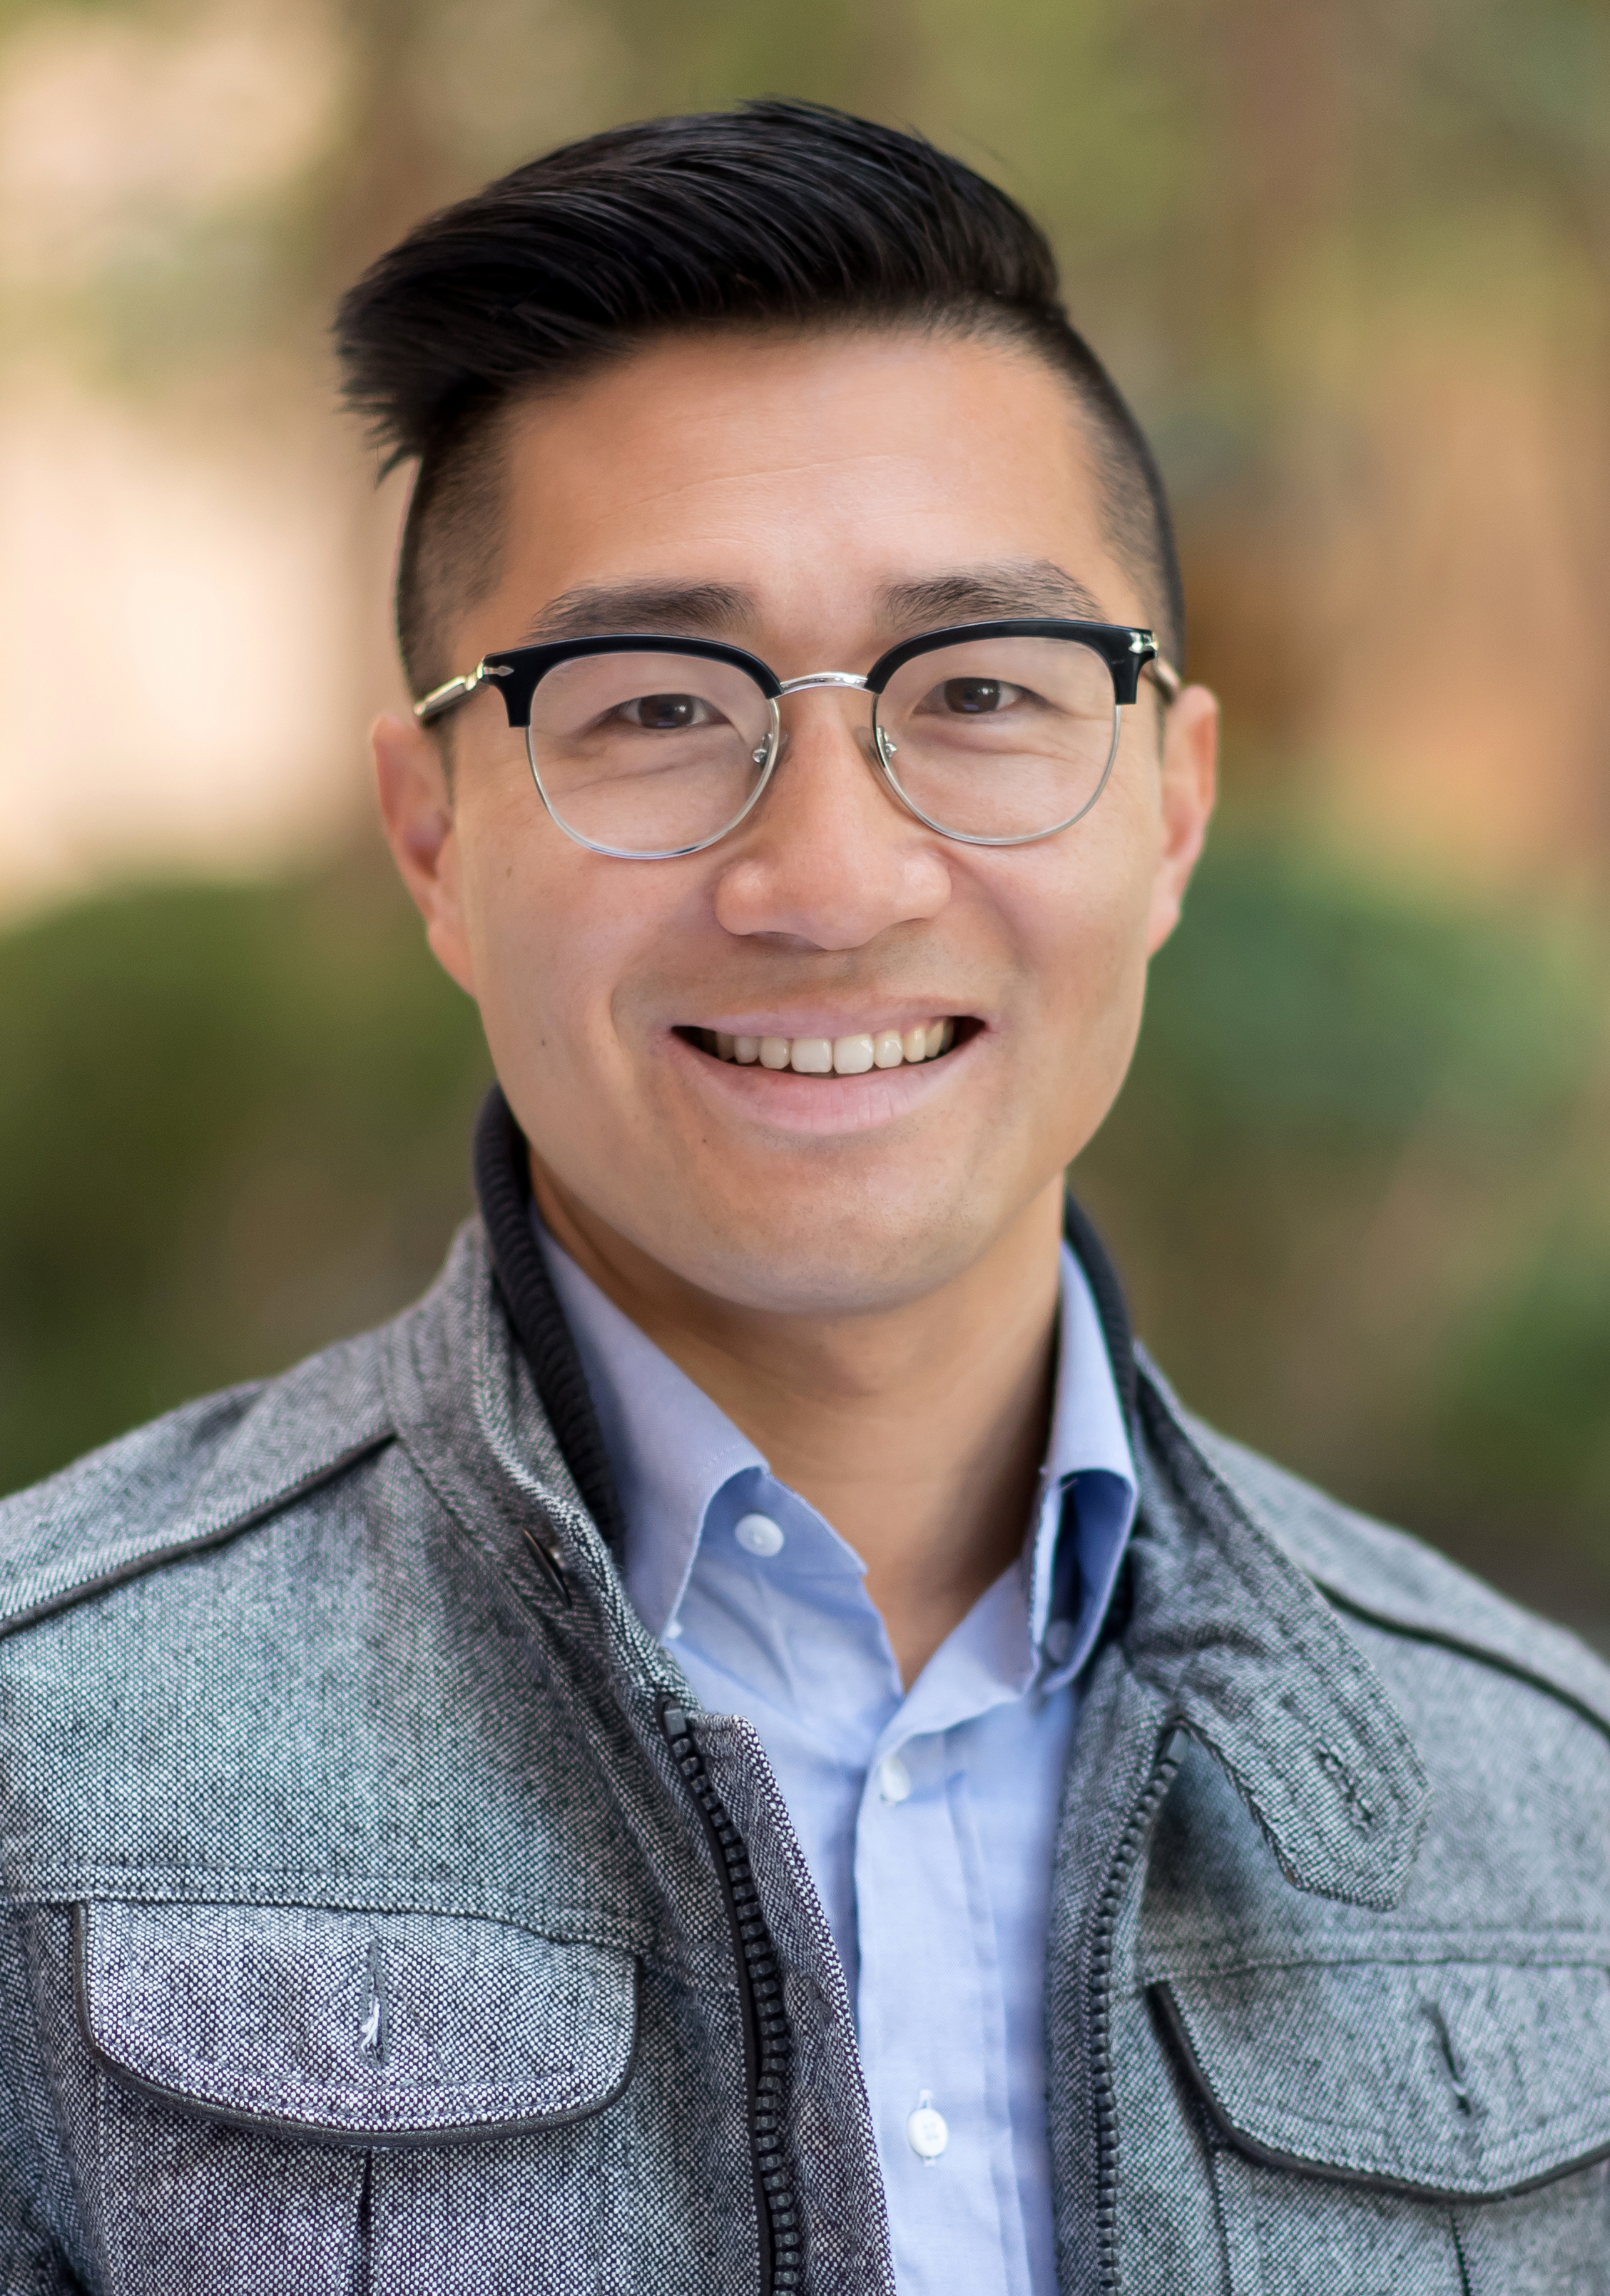 Headshot of Daniel Lau